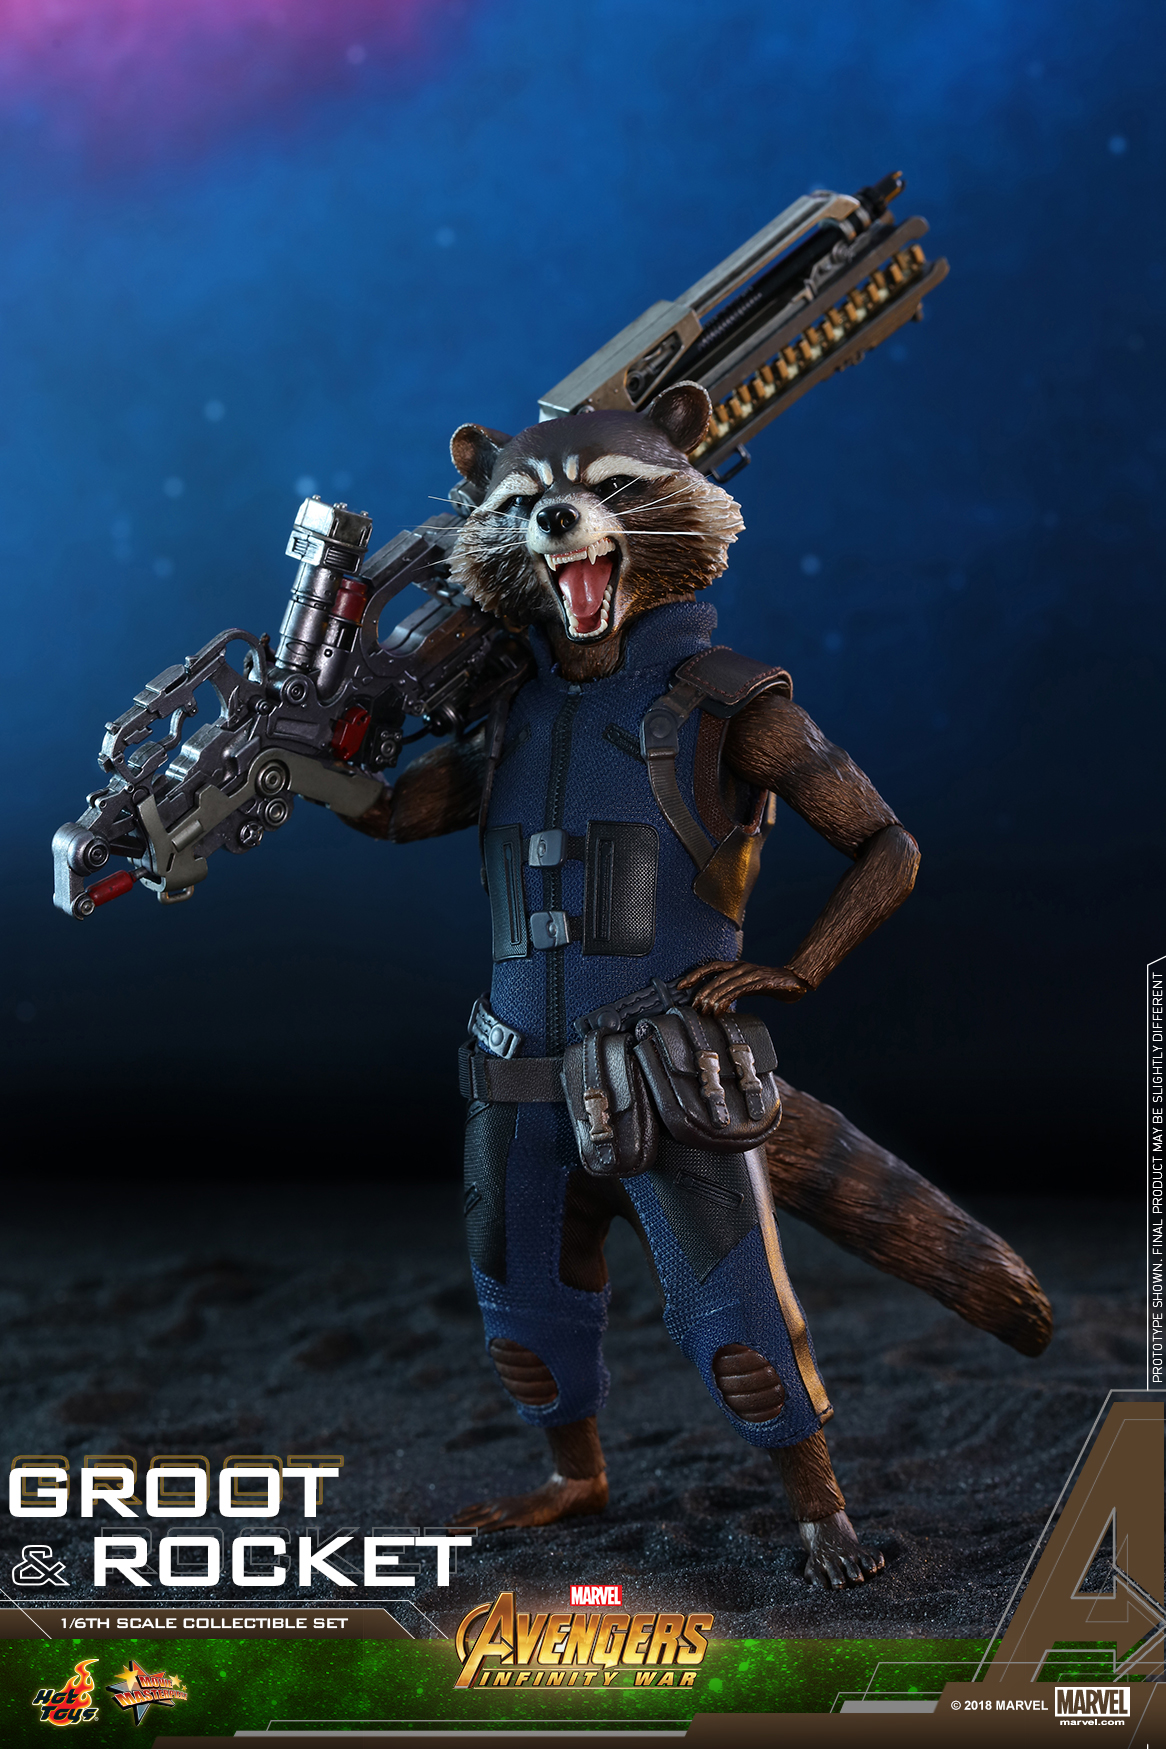 Hot Toys - AIW - Groot & Rocket collectible set_PR16